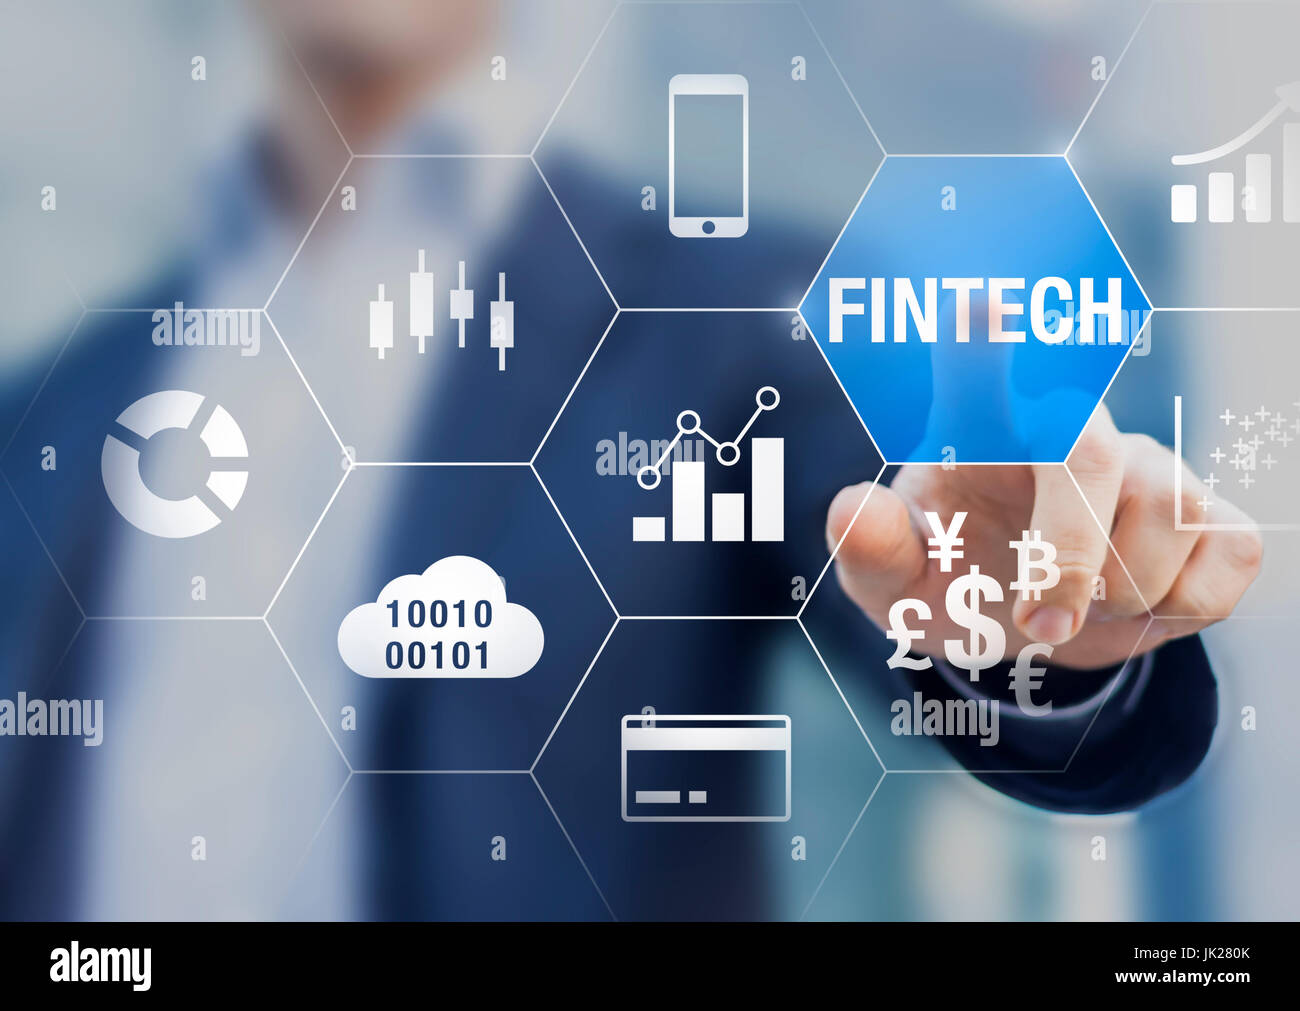 Businessman using fintech (financial technology) with connected icons of business intelligence (BI) charts, cloud - Stock Image